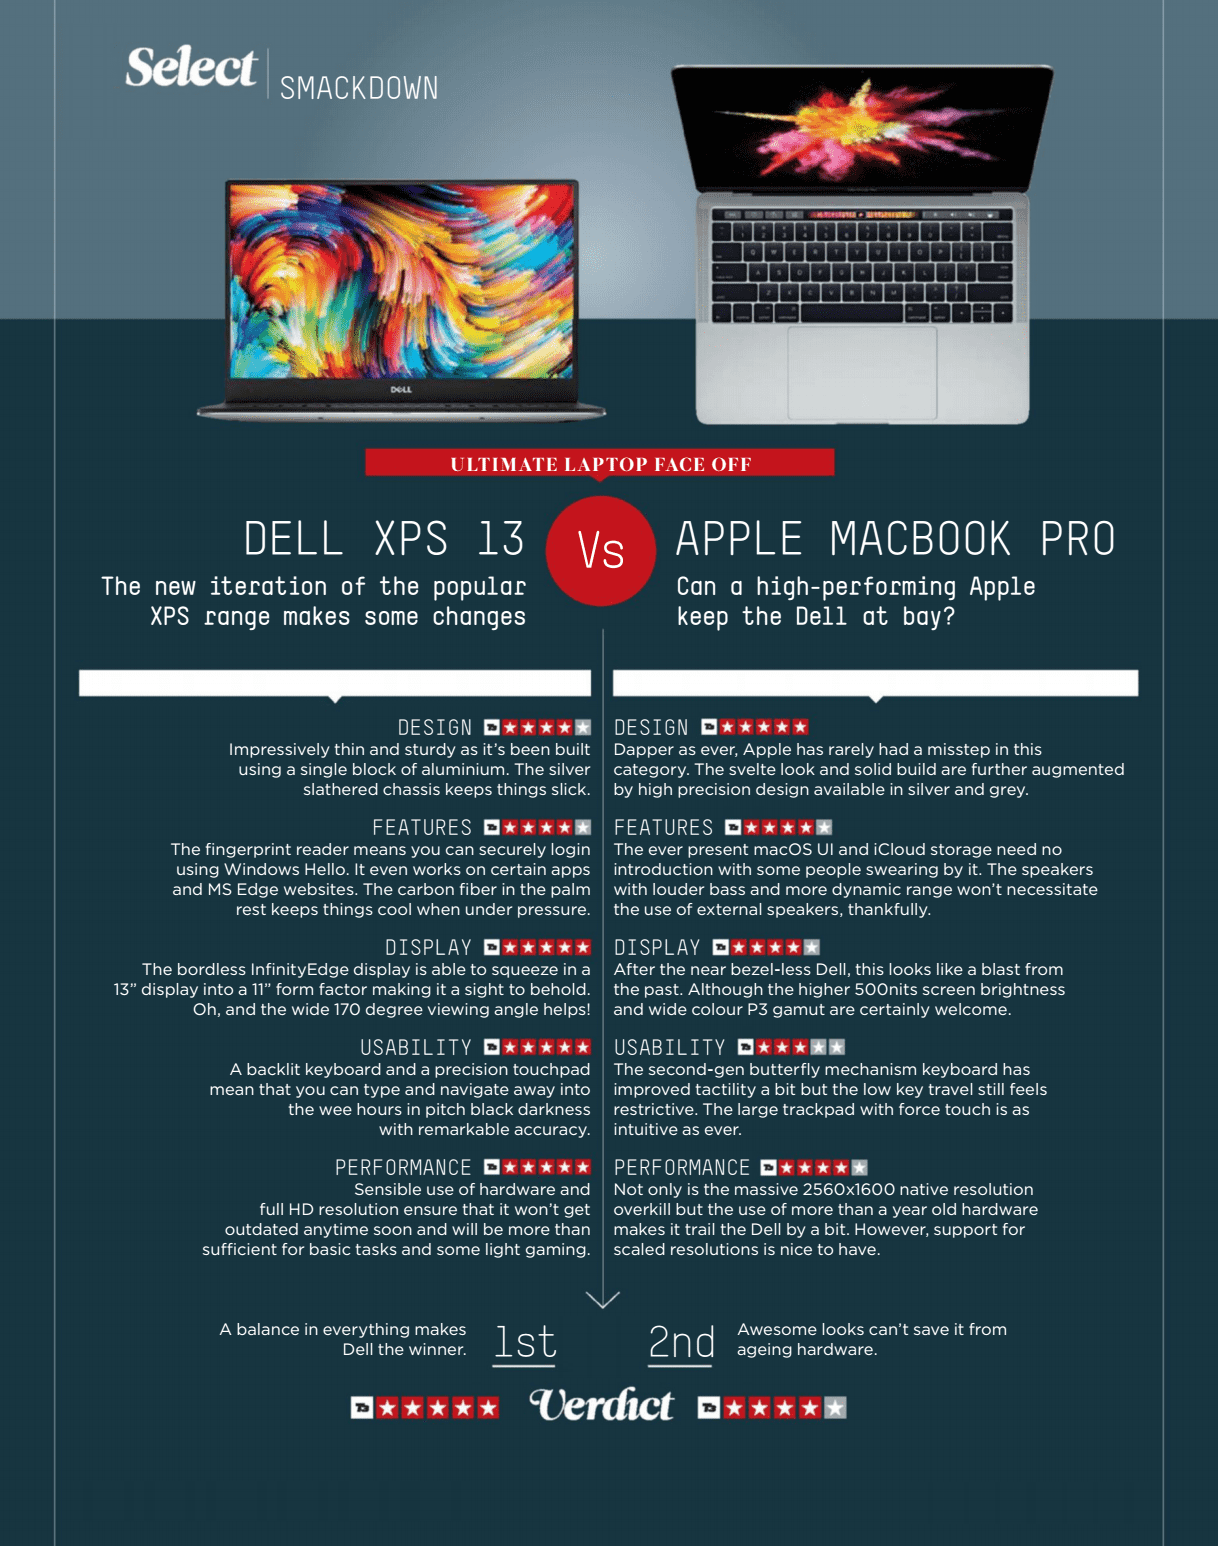 DELL XPS 13 Vs APPLE MACBOOK PRO